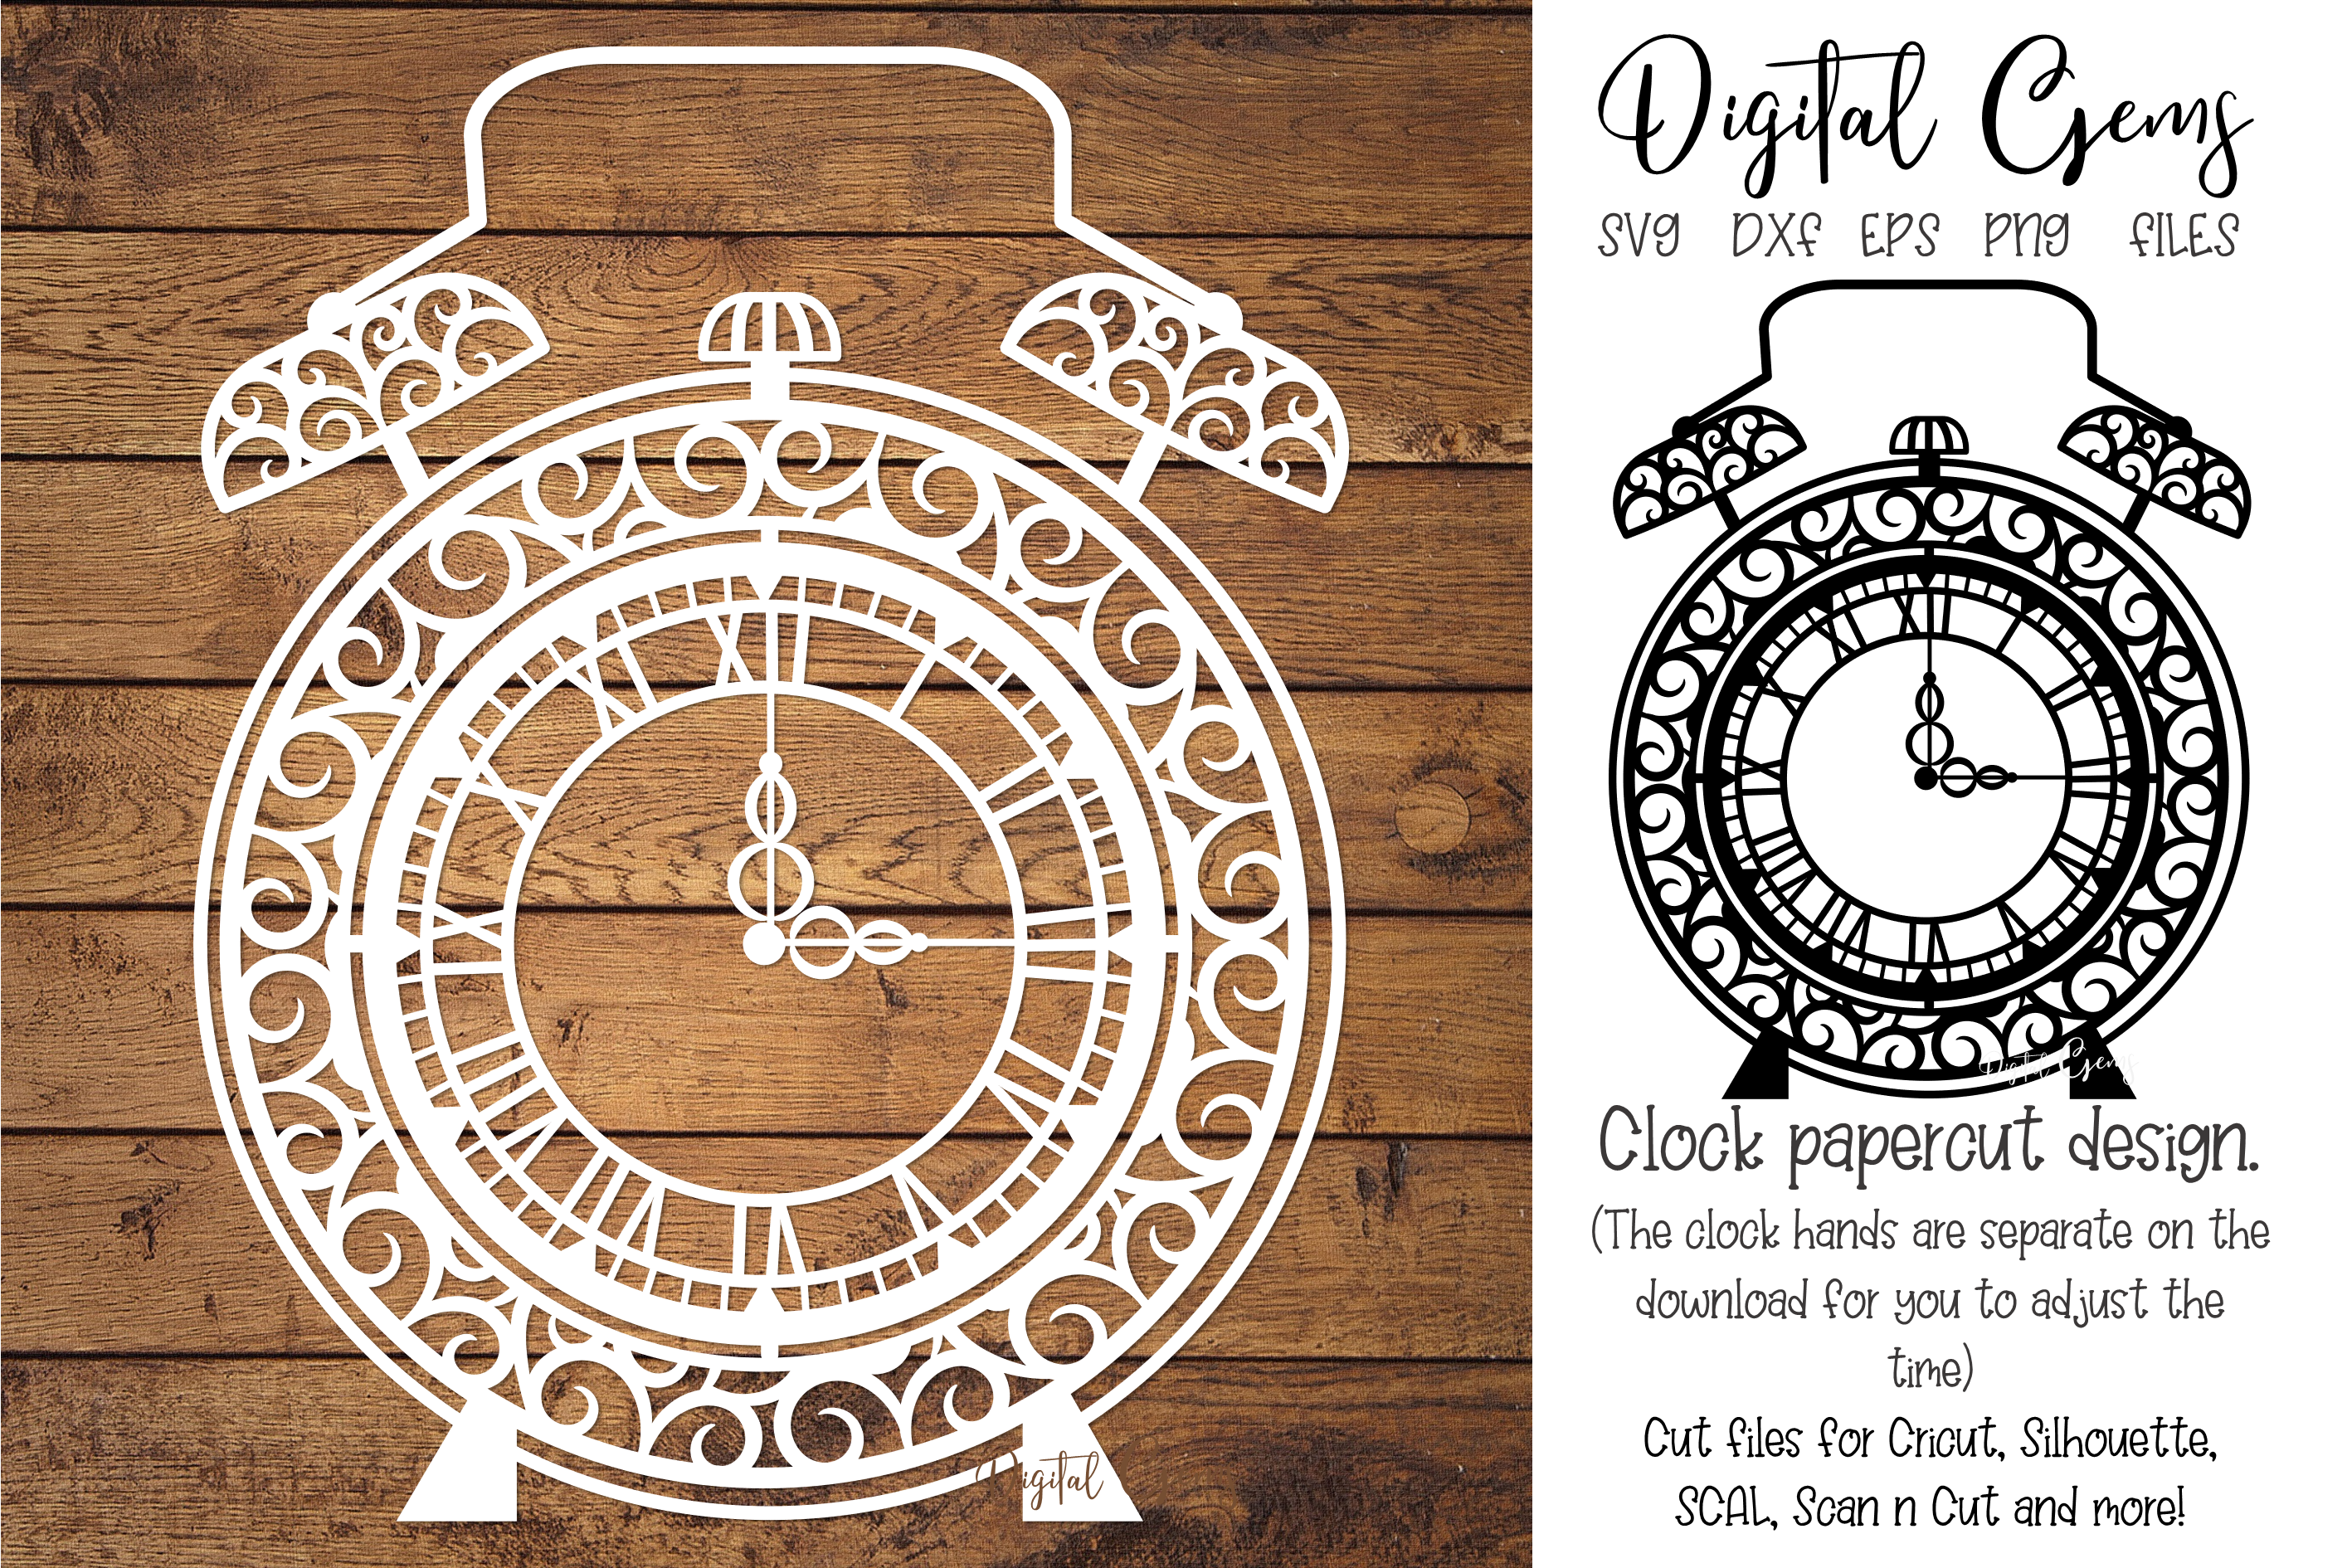 Download Free Alarm Clock Paper Cut Design Graphic By Digital Gems Creative for Cricut Explore, Silhouette and other cutting machines.